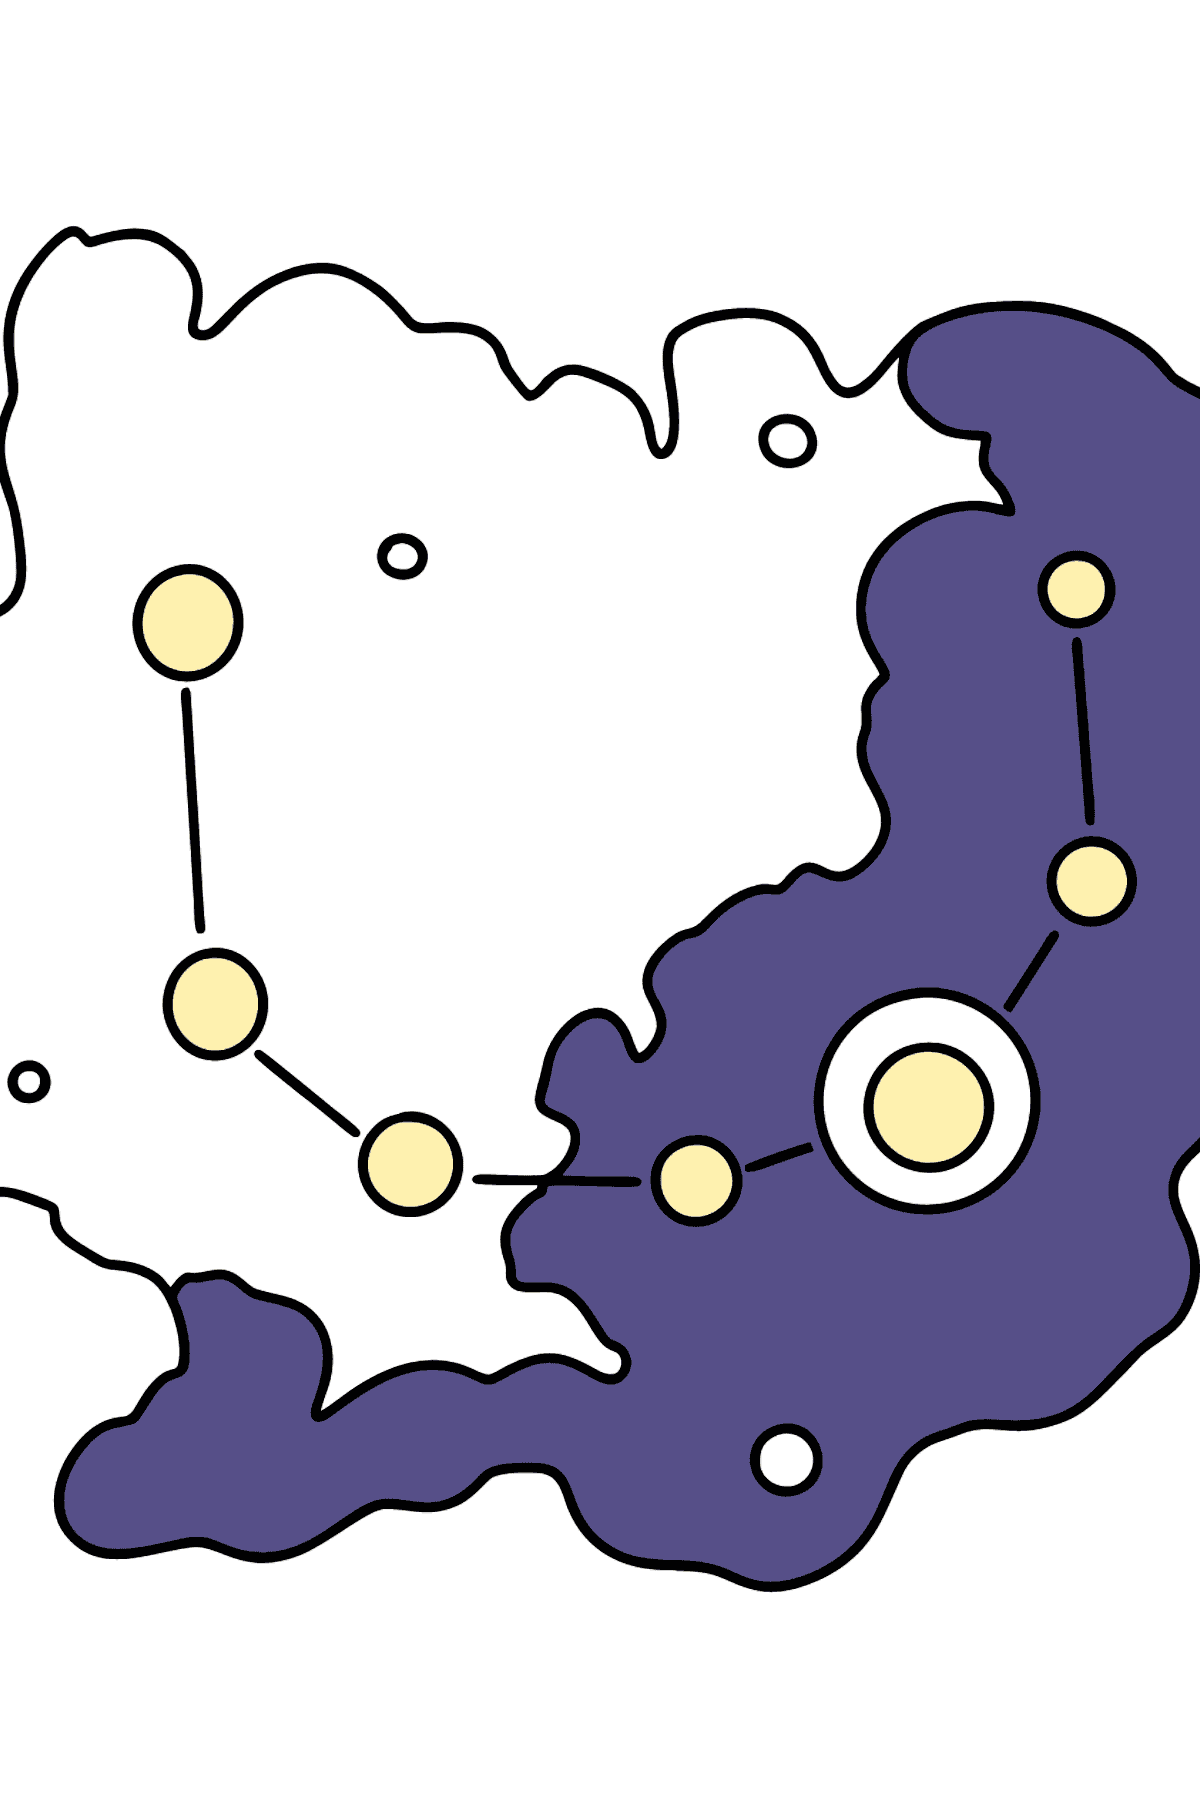 Constellation coloring page - Coloring Pages for Kids